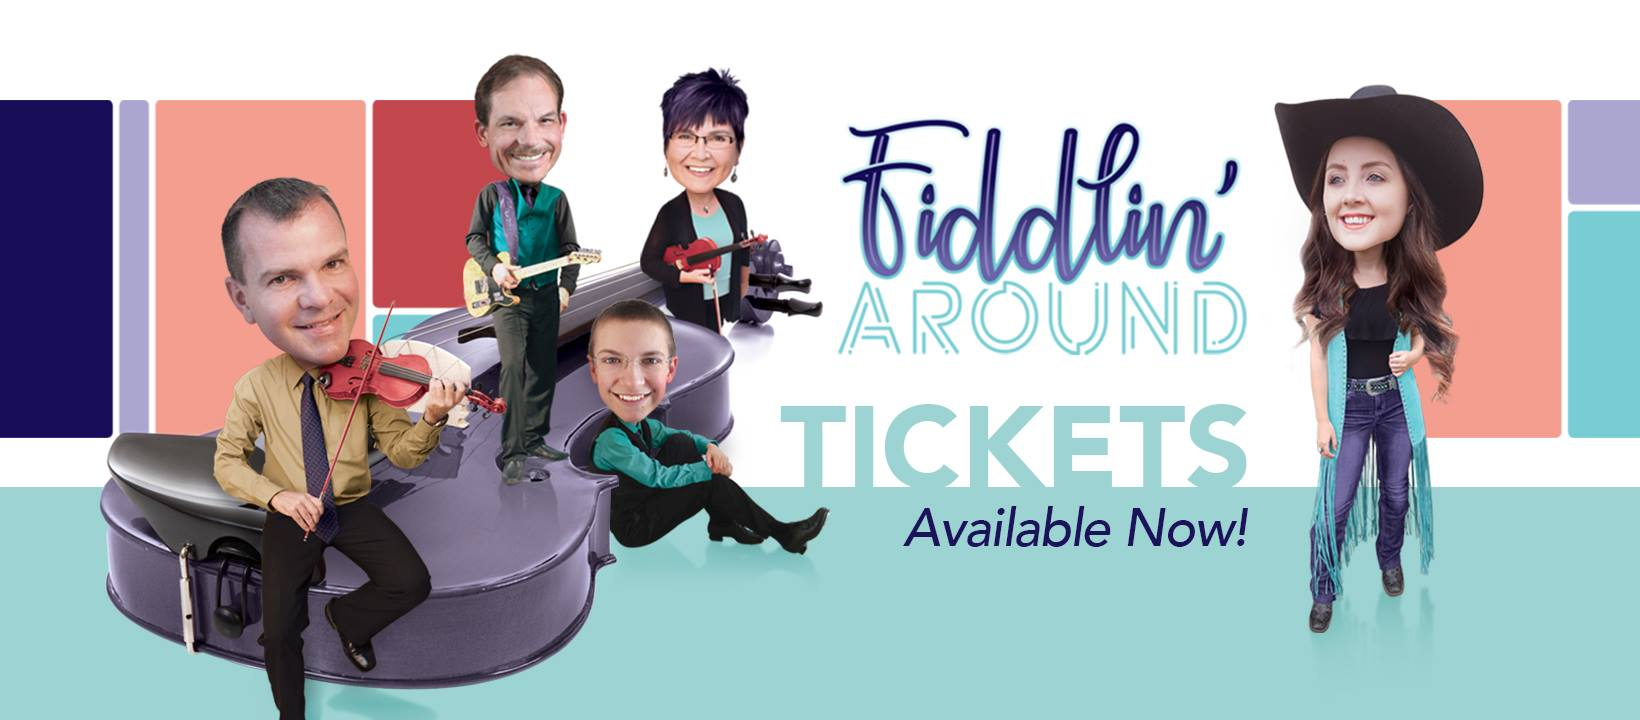 Fiddlin' Around - The Scott Woods Band @ Revelstoke Community Centre |  |  |